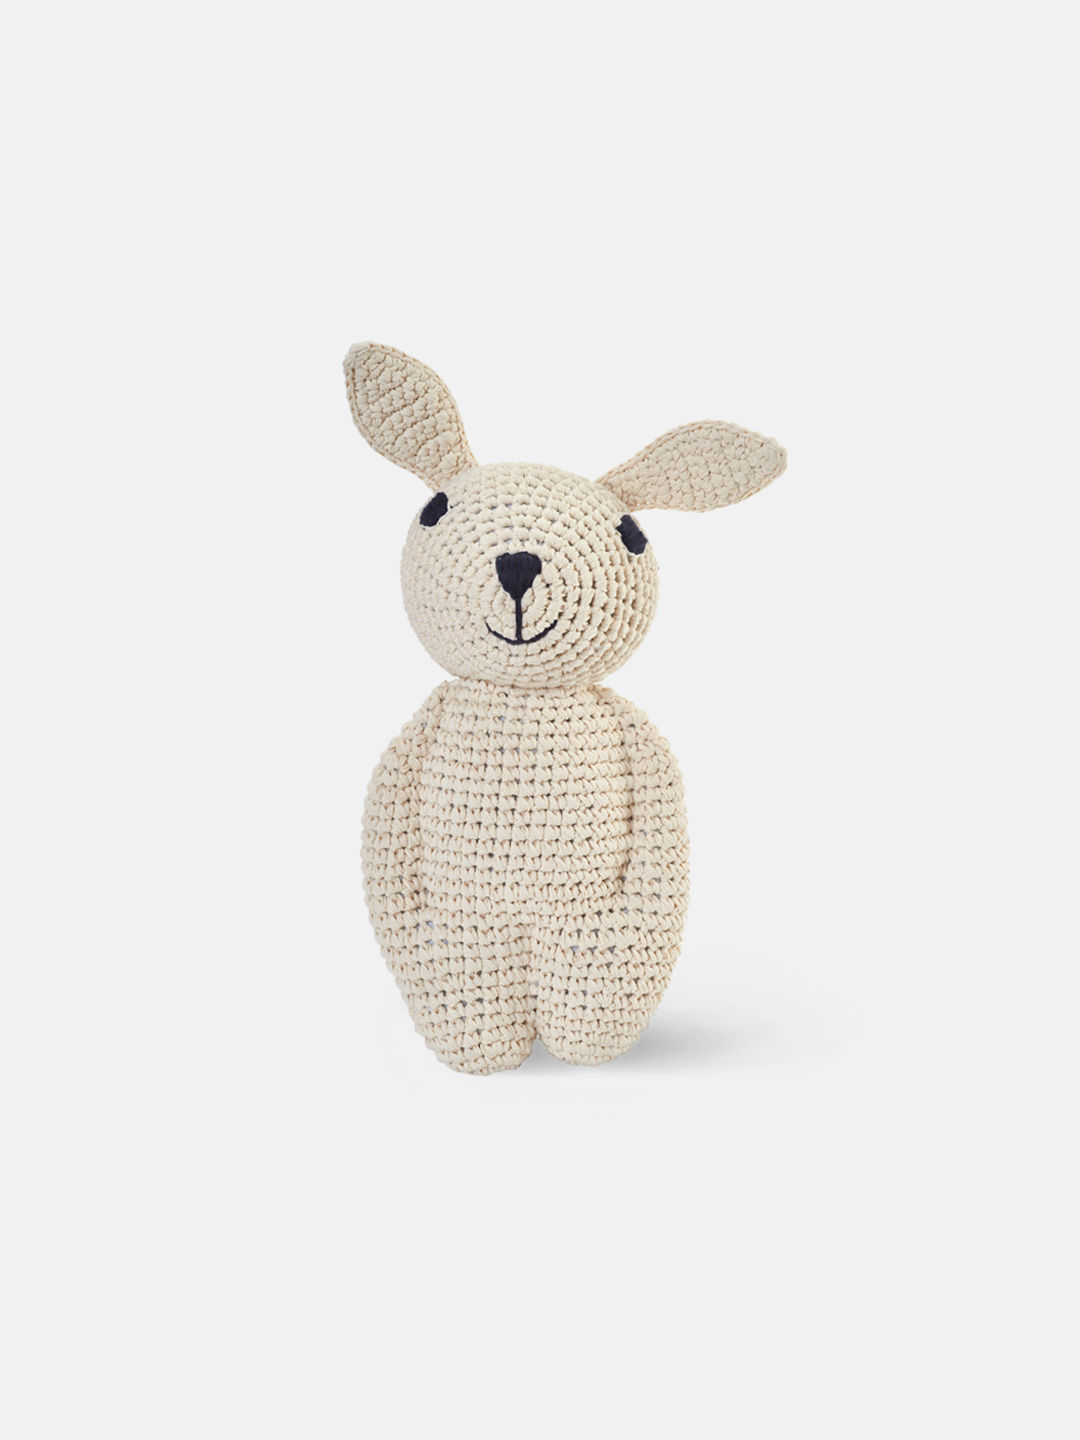 Crochet Midi Rabbit